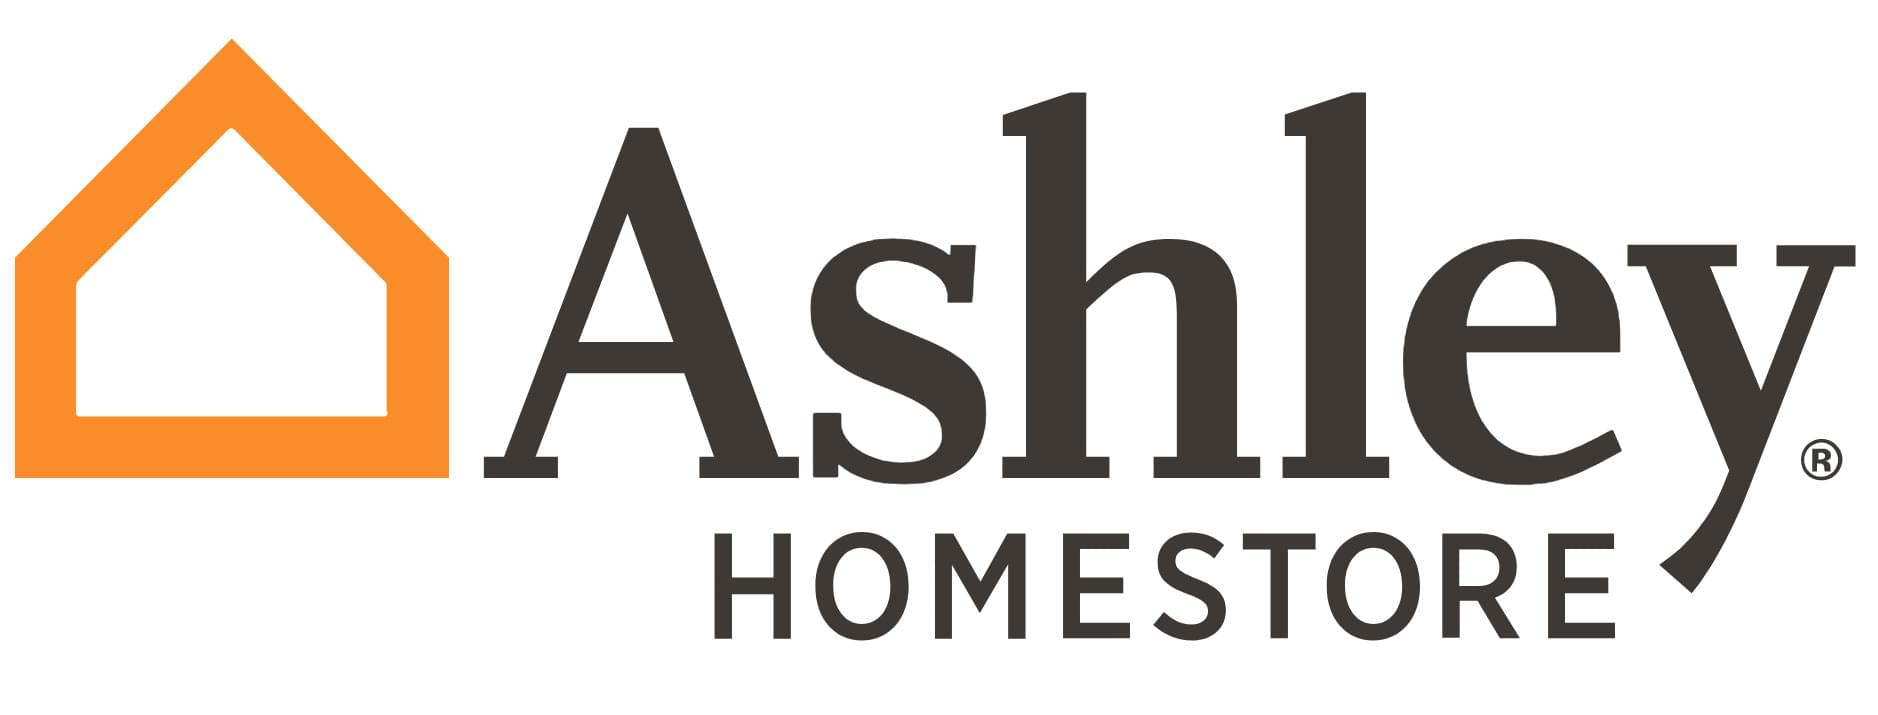 WEBE108 Store Tour: Ashley HomeStore | WEBE-FM